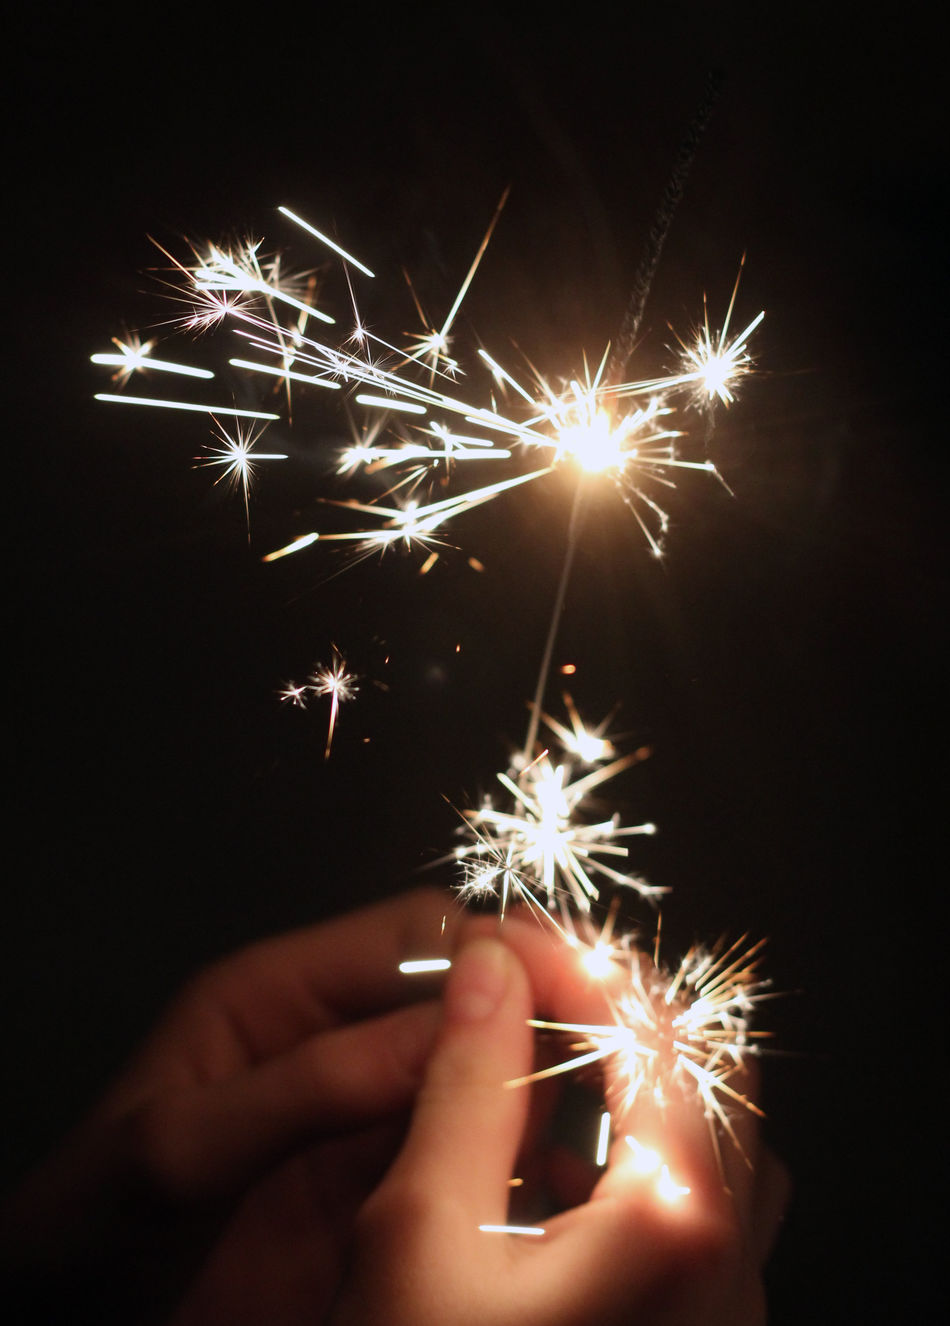 Sparkler in the dark Bright Dark Feiern Fingers Fire Fun Happy New Year Hell Dunkel Kontrast Jahreswechsel Lights New Year Party Party Time! Partying Ritual Stars Wunderkerze